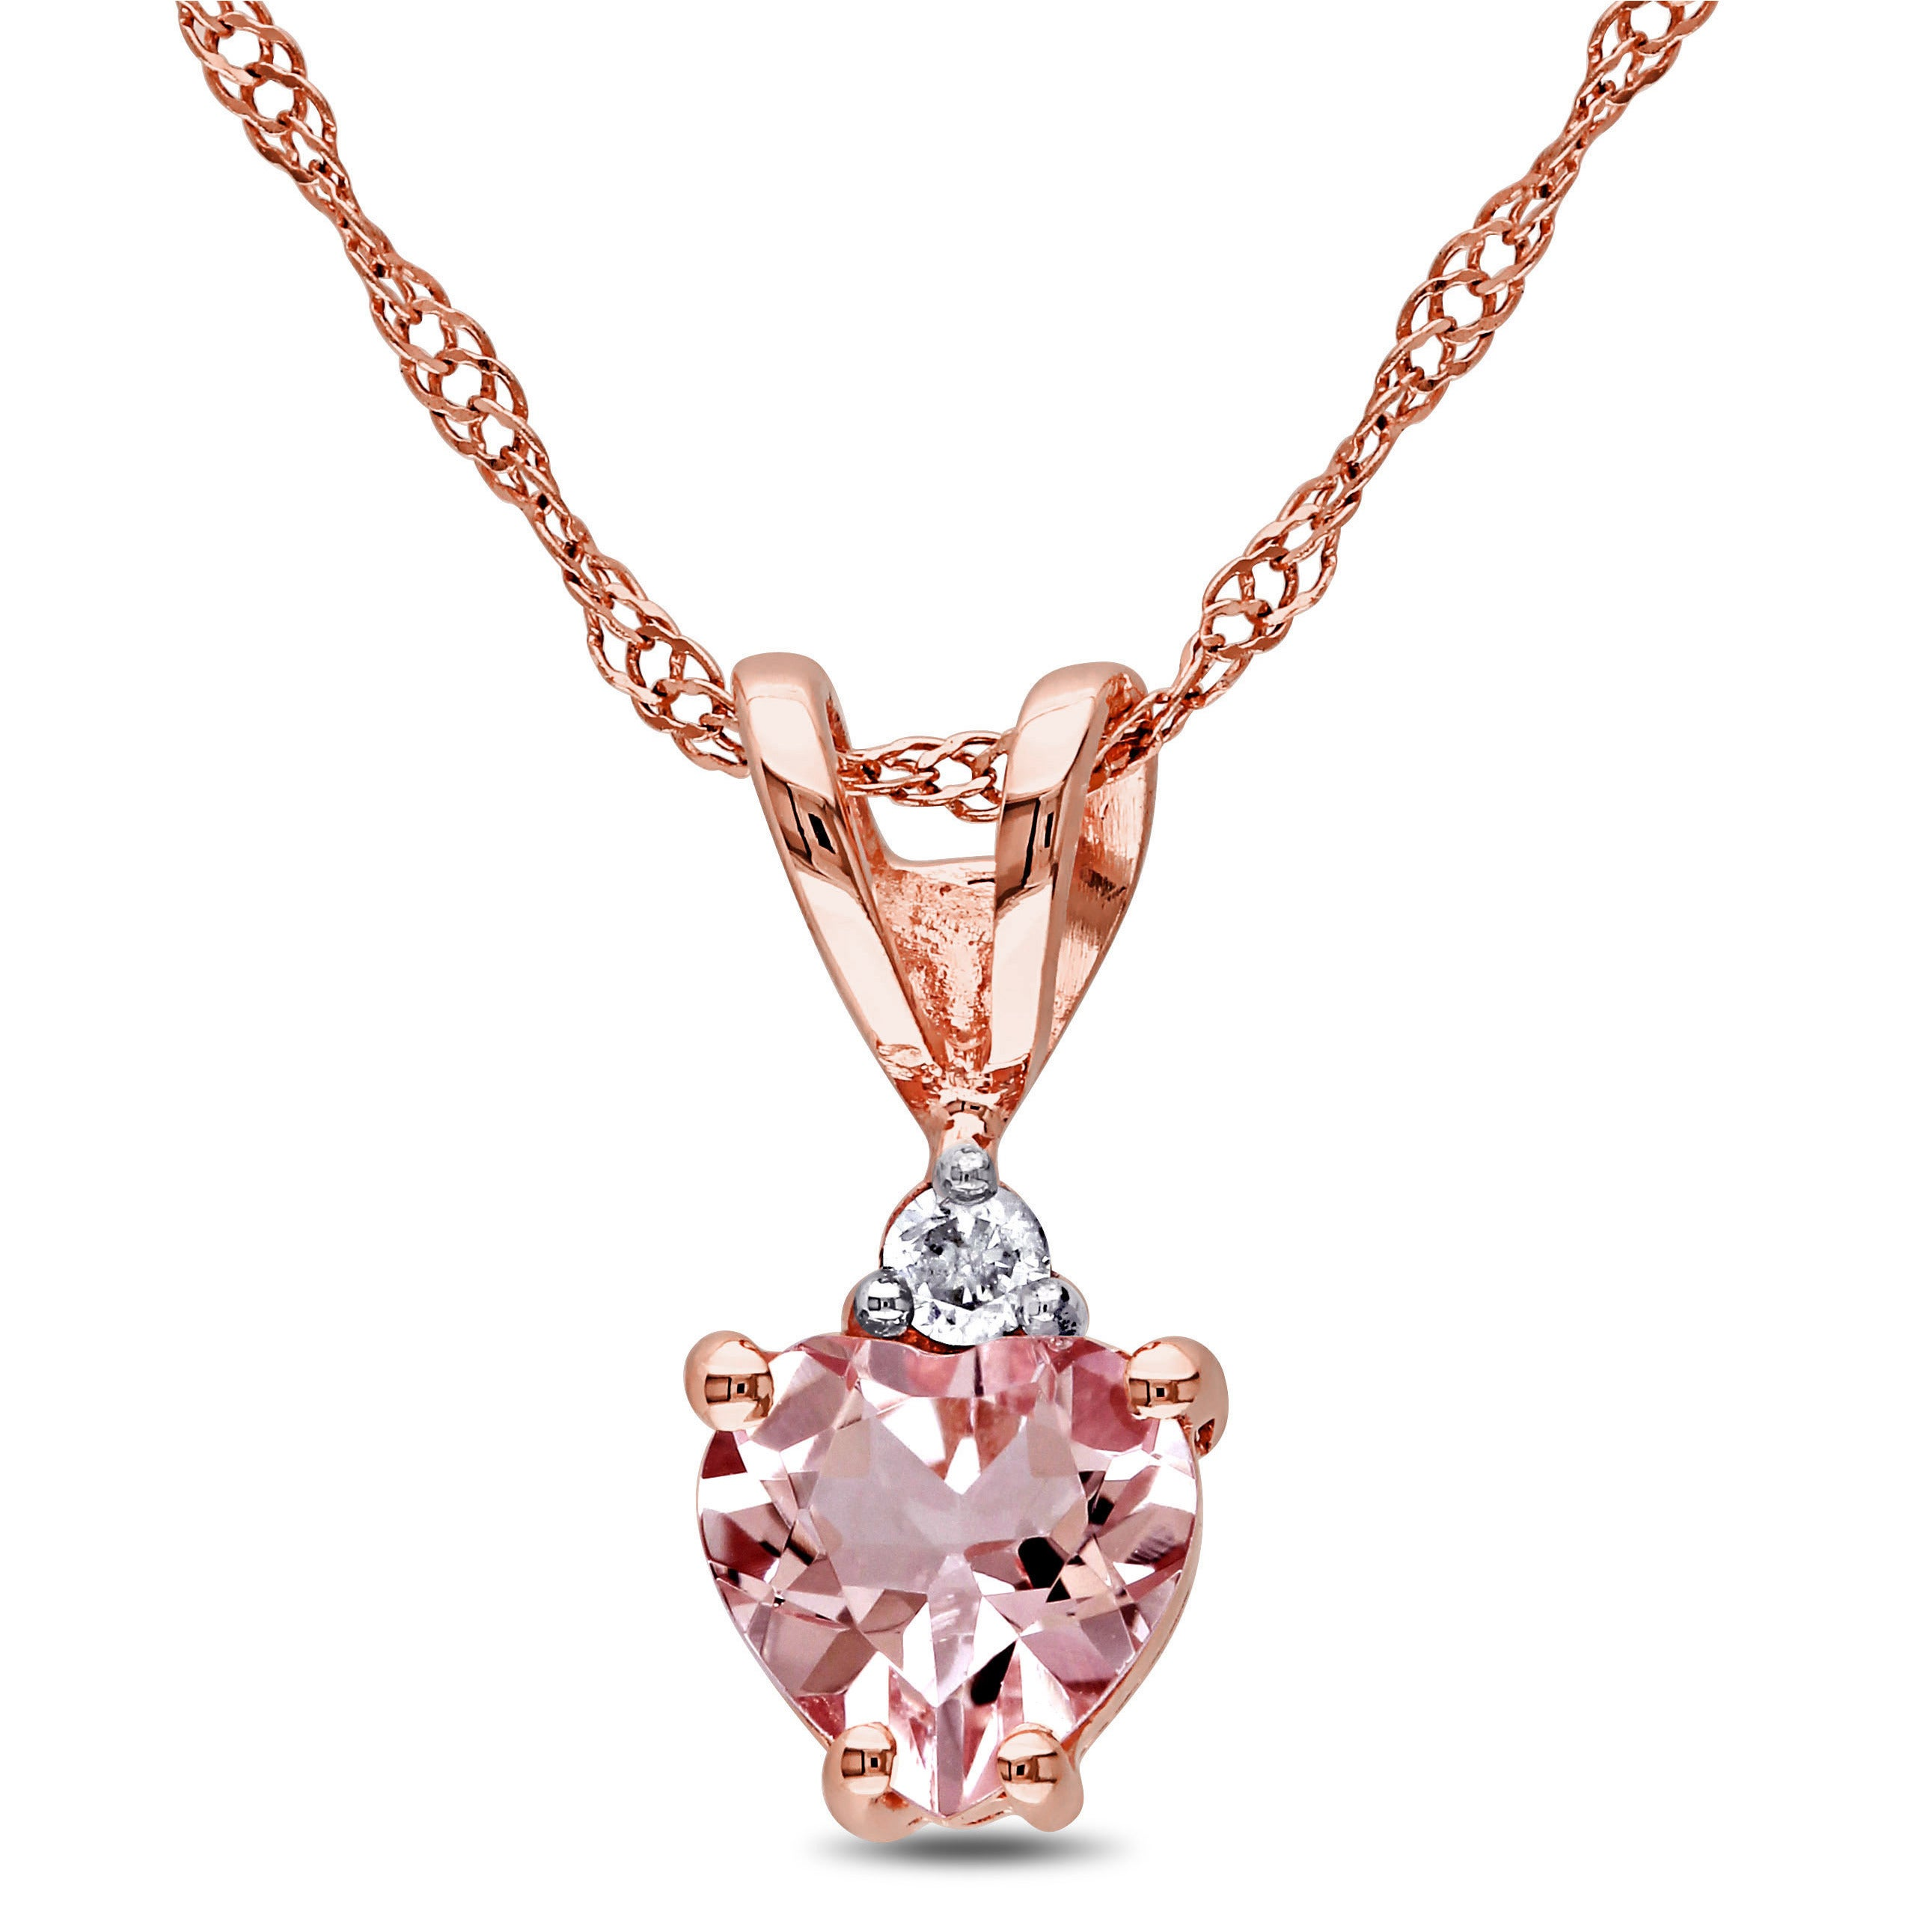 solitaire product new morganite york pendant vasa necklace